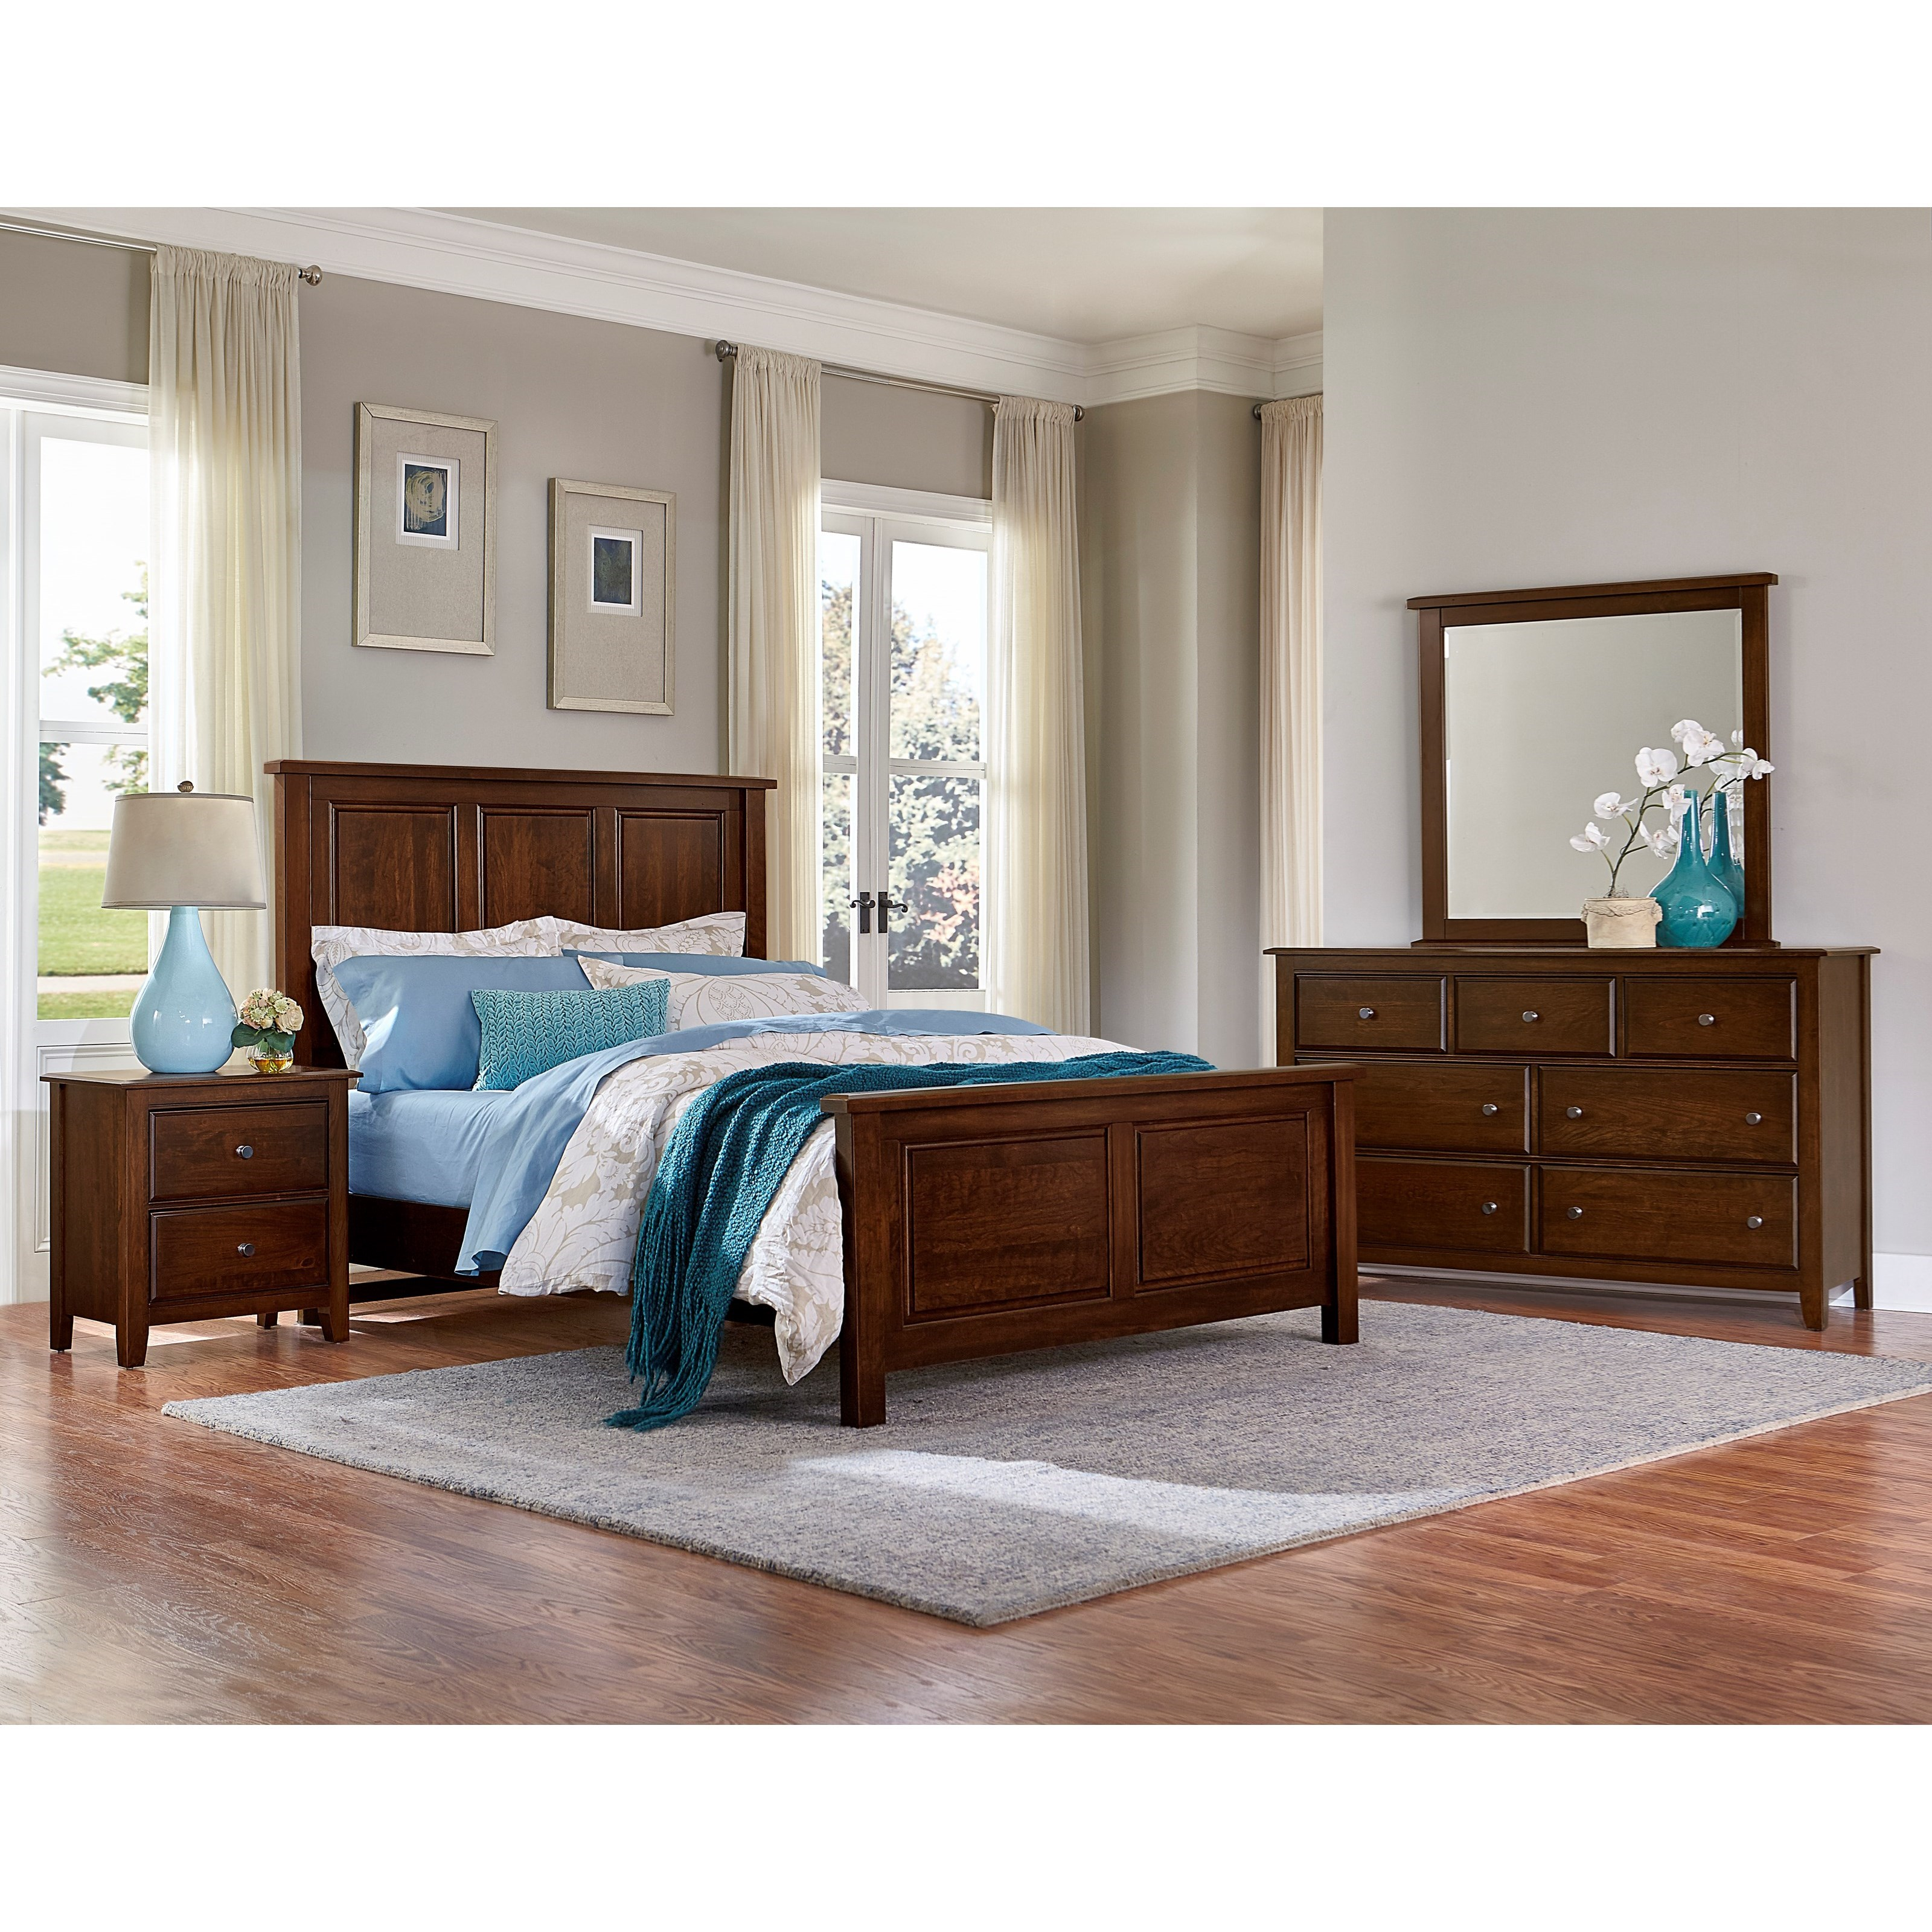 Artisan Choices Queen Bedroom Group by Artisan & Post by Vaughan Bassett at Becker Furniture